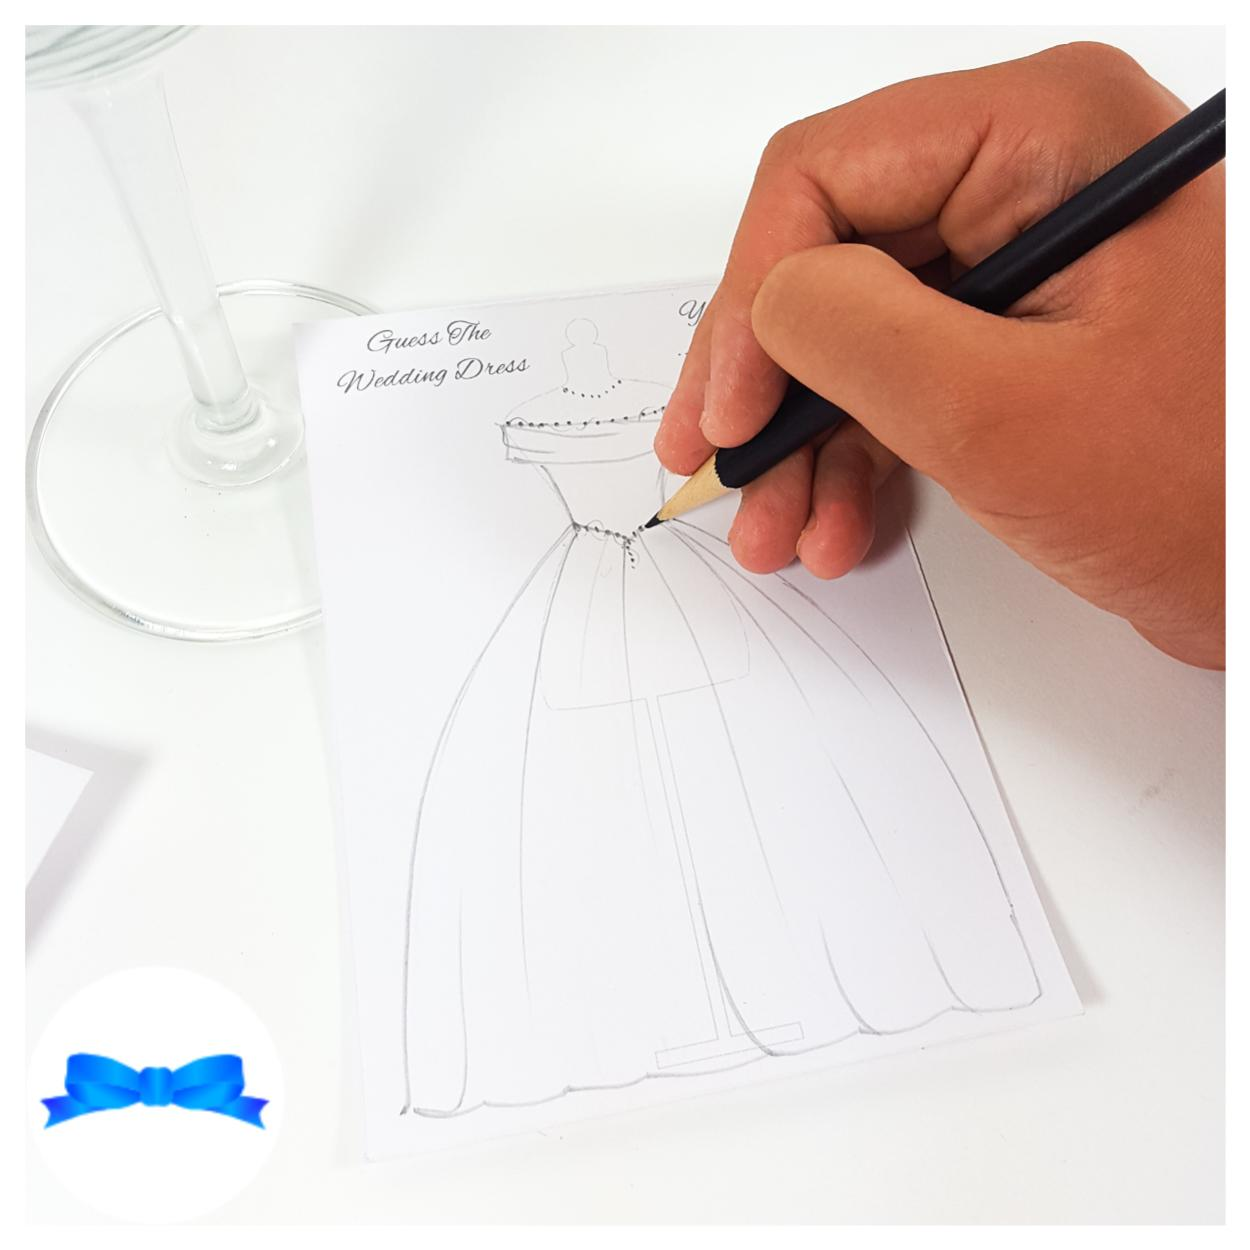 Guess the wedding dress game cards